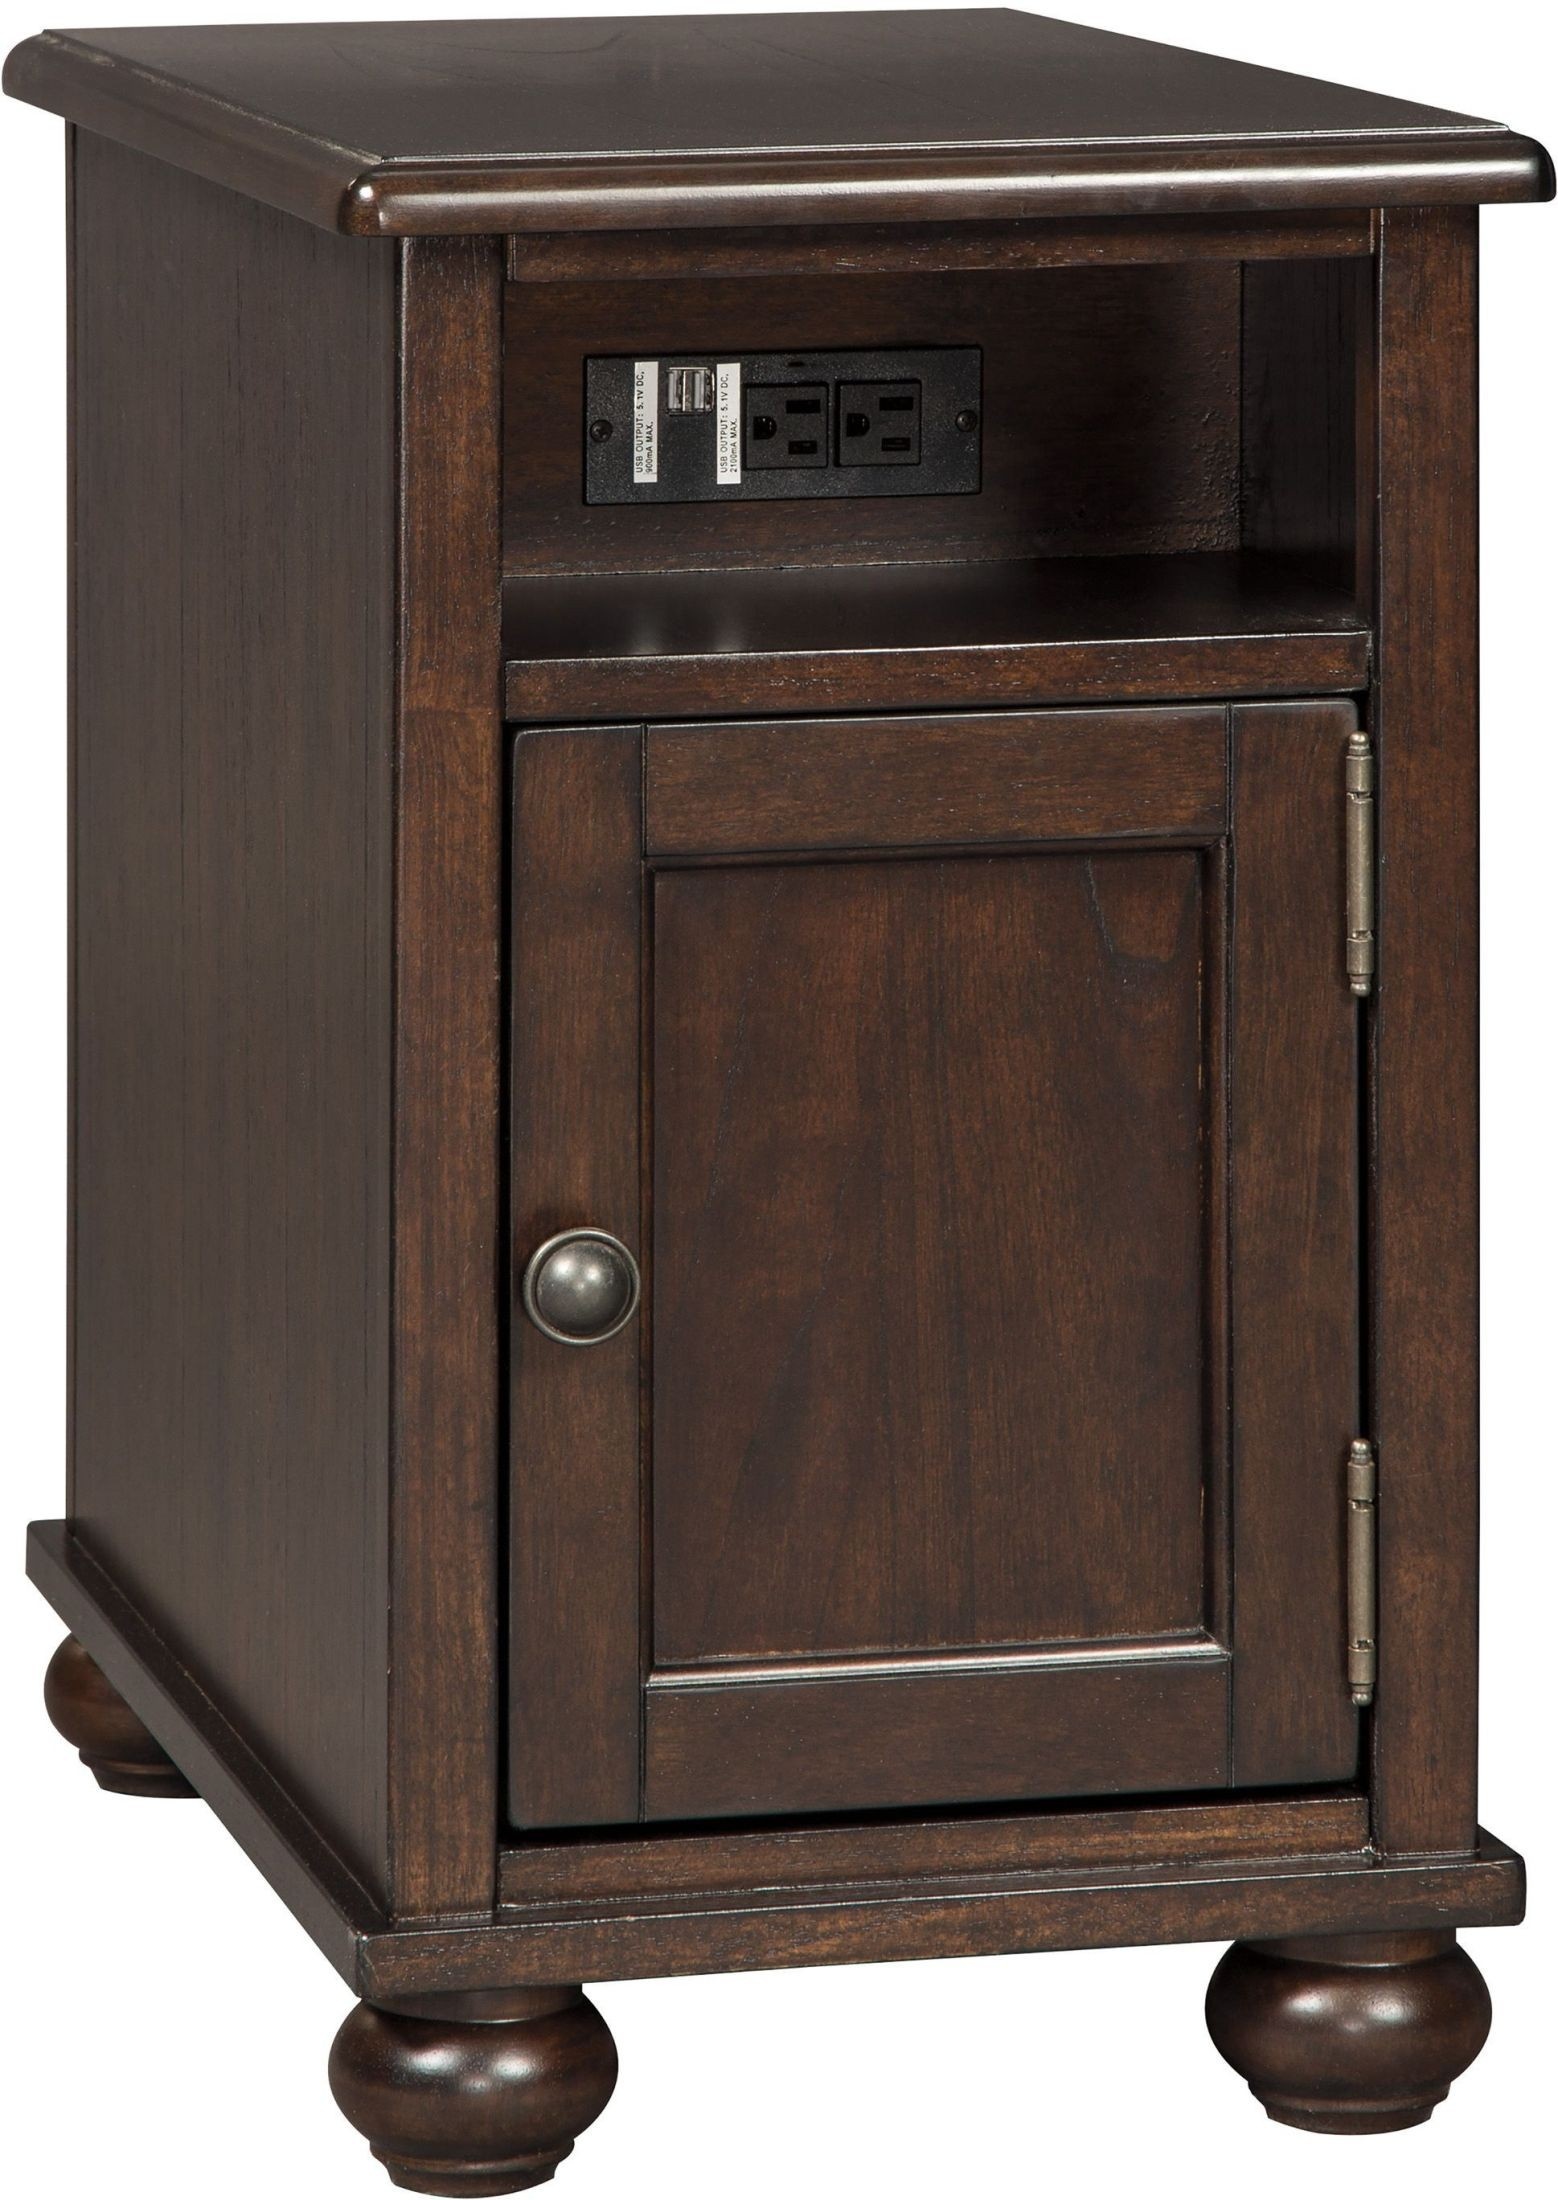 Barilanni Dark Brown Chairside End Table From Ashley